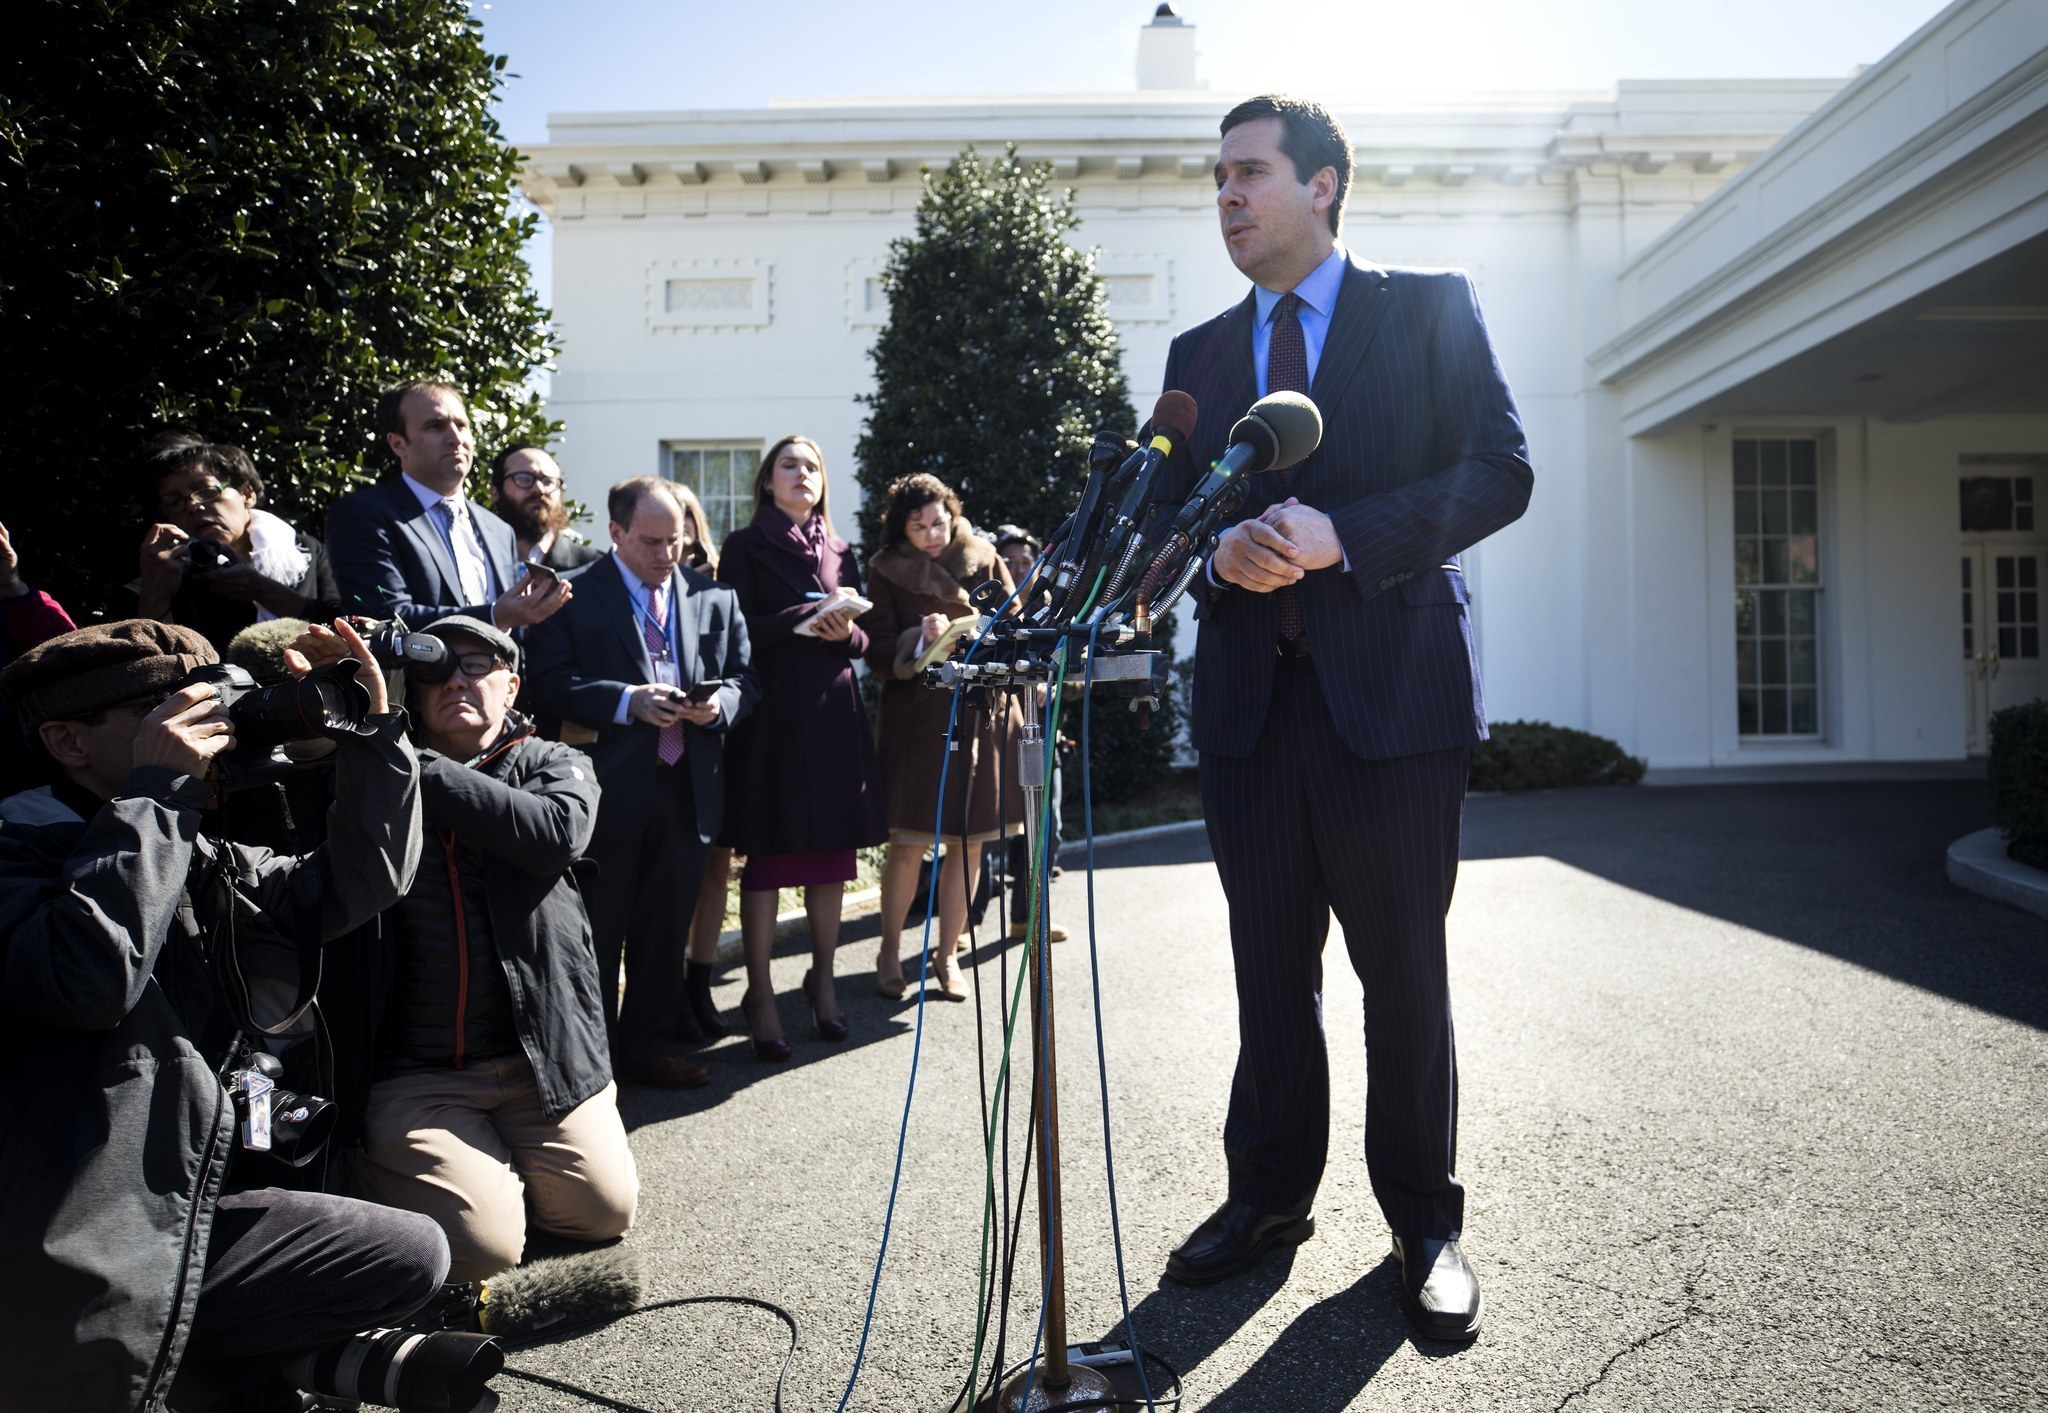 Rep. Devin Nunes speaks to the media outside the White House after he shared intelligence information with President Trump.